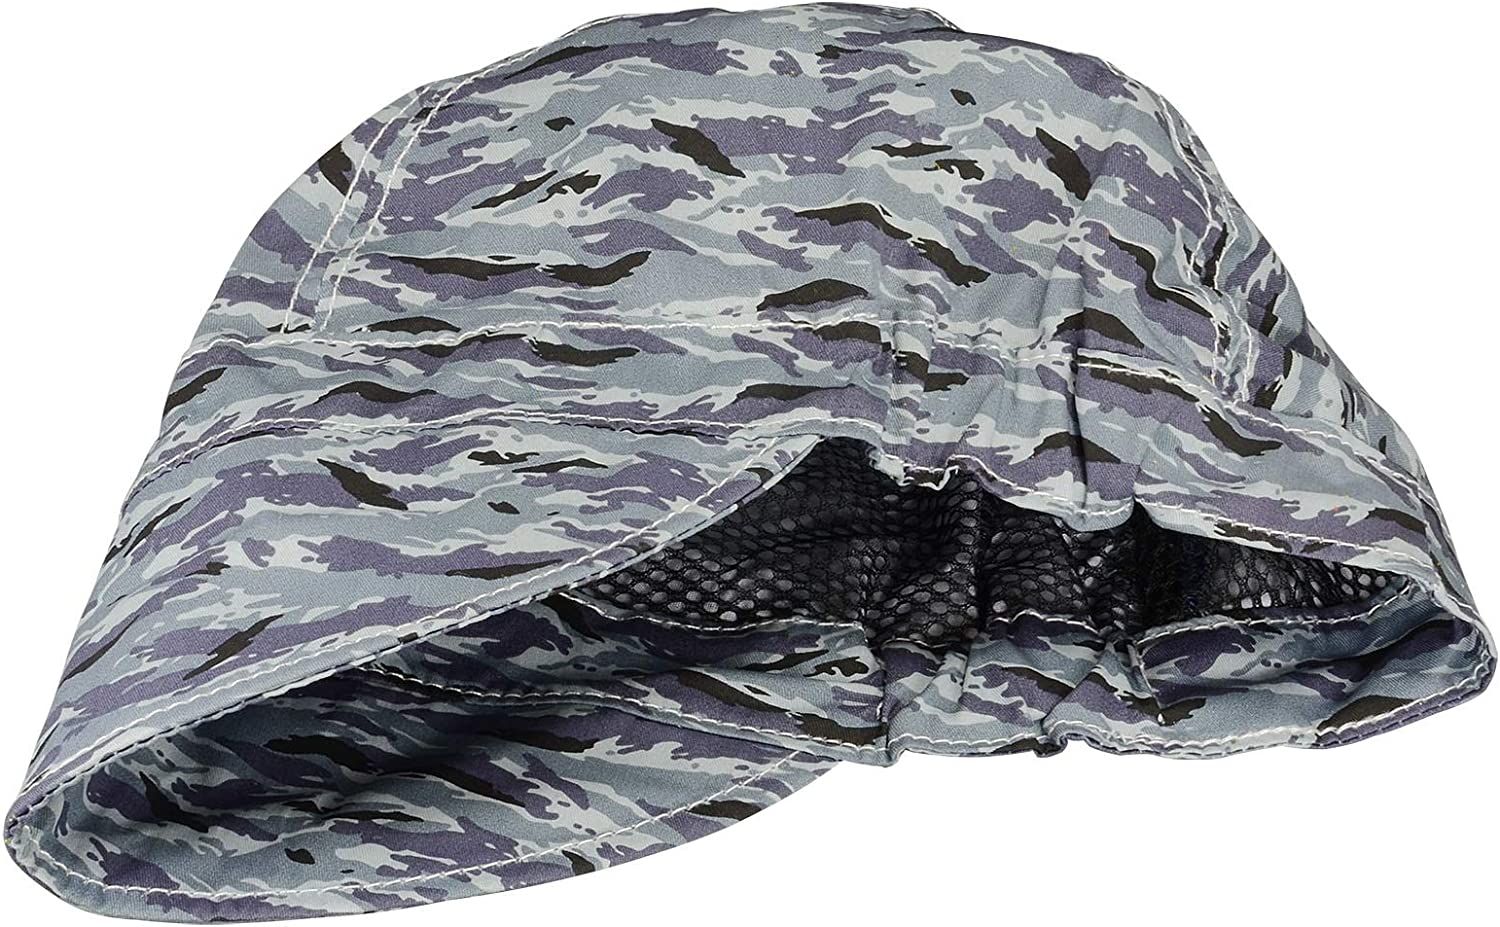 2019 New Style Pure Cotton Welding Cap Mesh Inside Liner